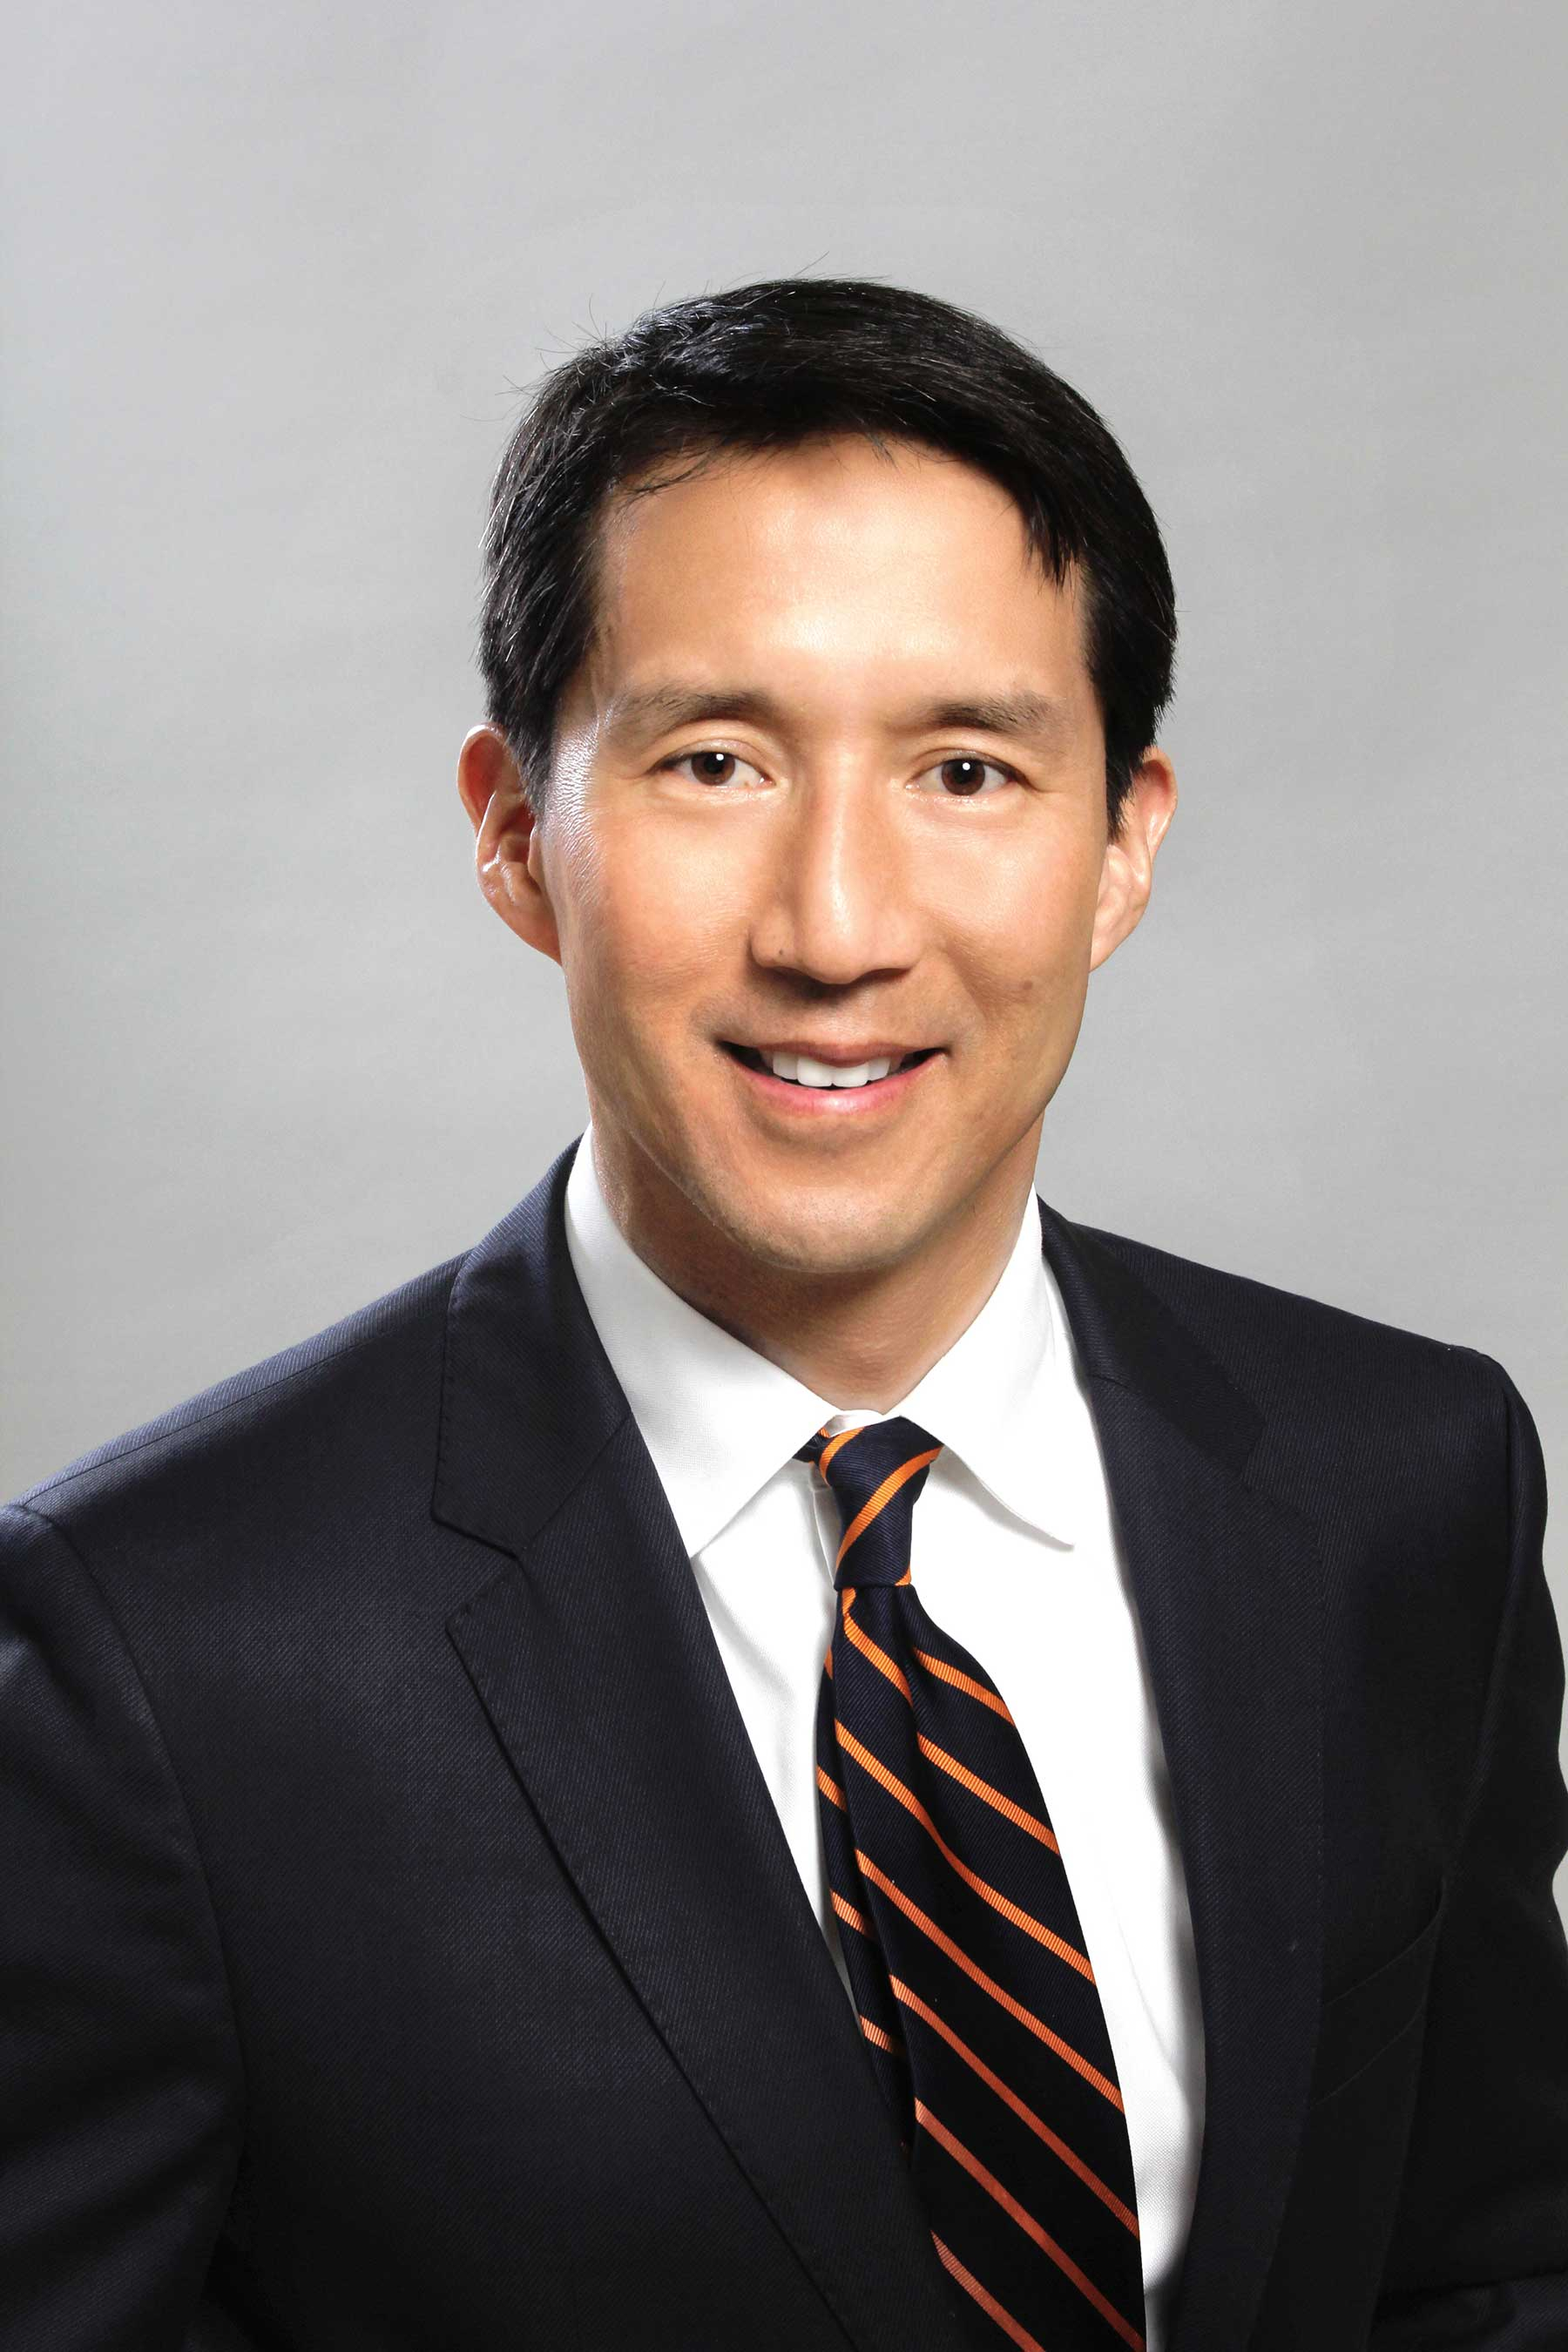 Dr. Allen Ho, MD FACS, Director of Retina Research, Wills Eye Hospital and Professor of Ophthalmology at Thomas Jefferson University, is available for interviews about the importance of all people with diabetes getting an annual comprehensive dilated eye exam.